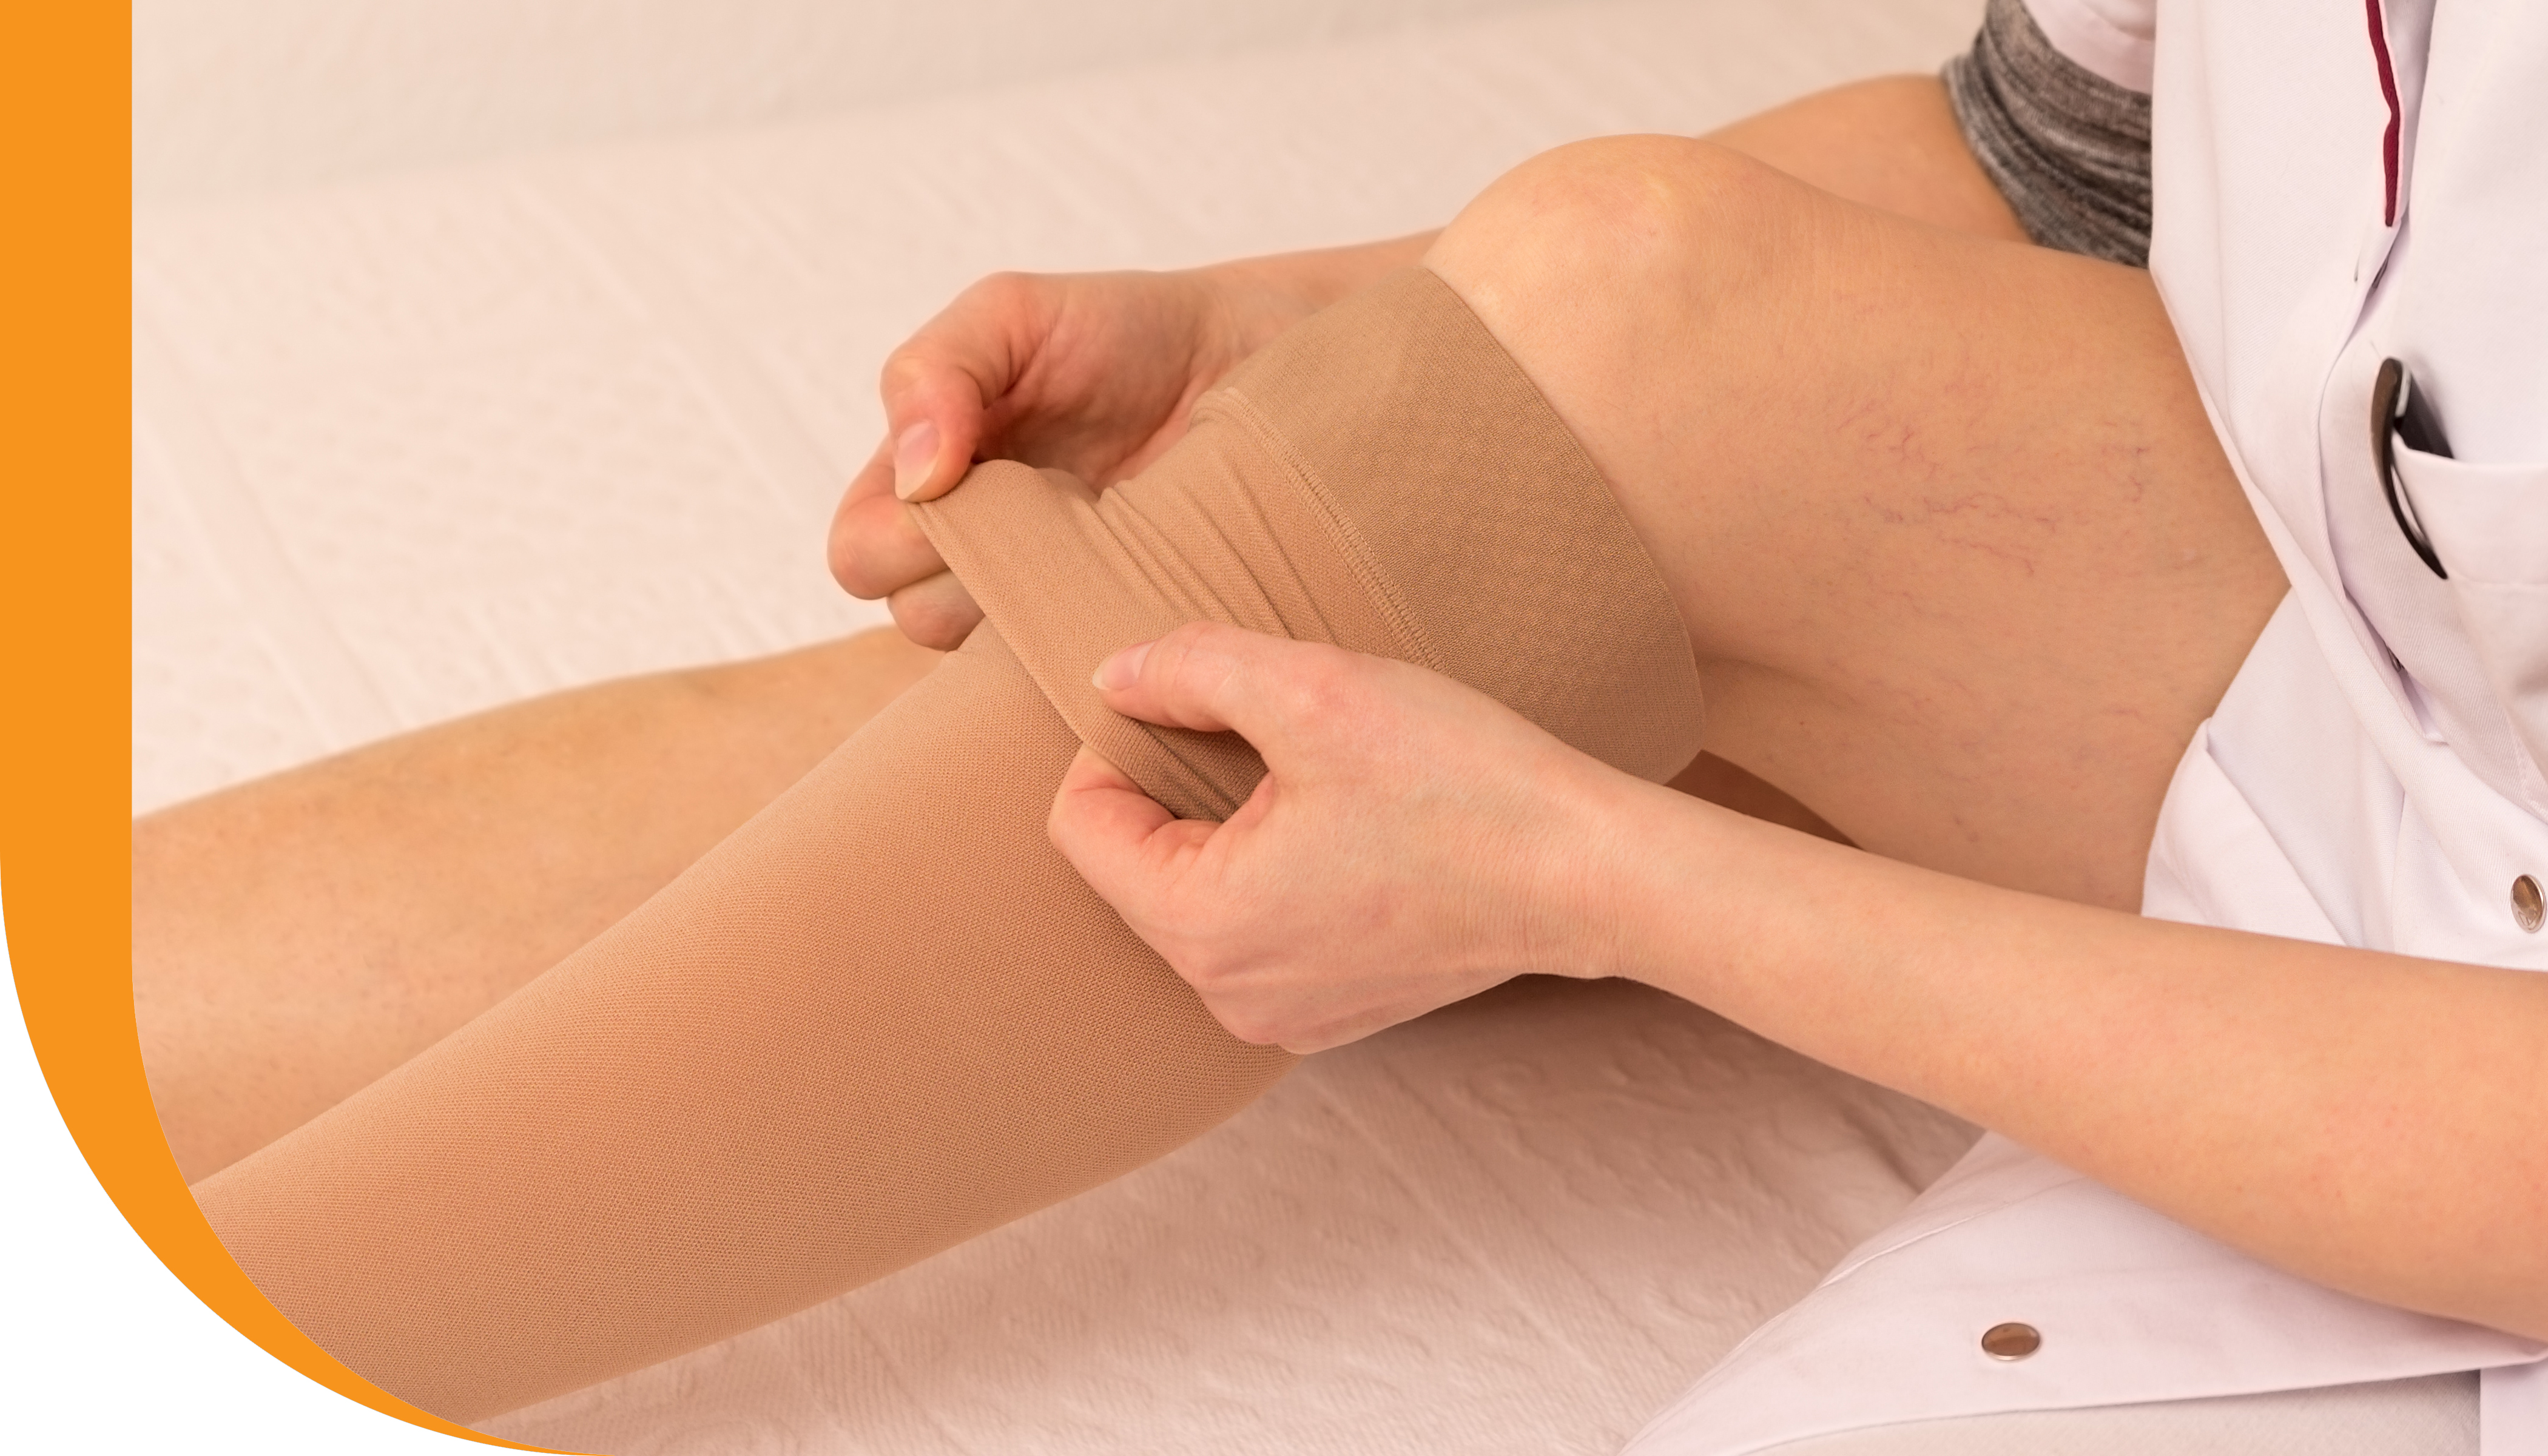 A woman putting on compression stockings.